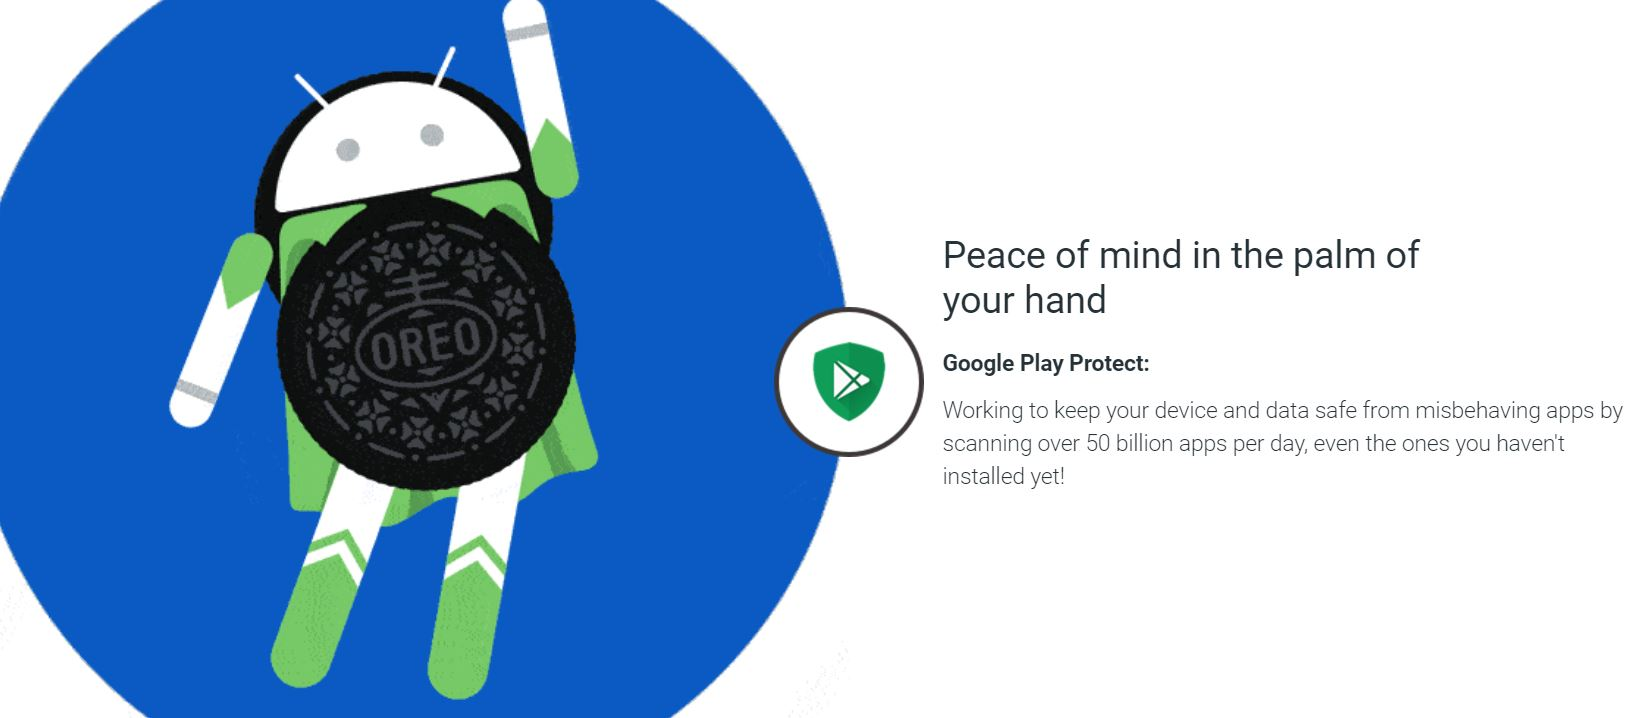 New Android O (OREO) Features and Supported Devices - TipsGeeks